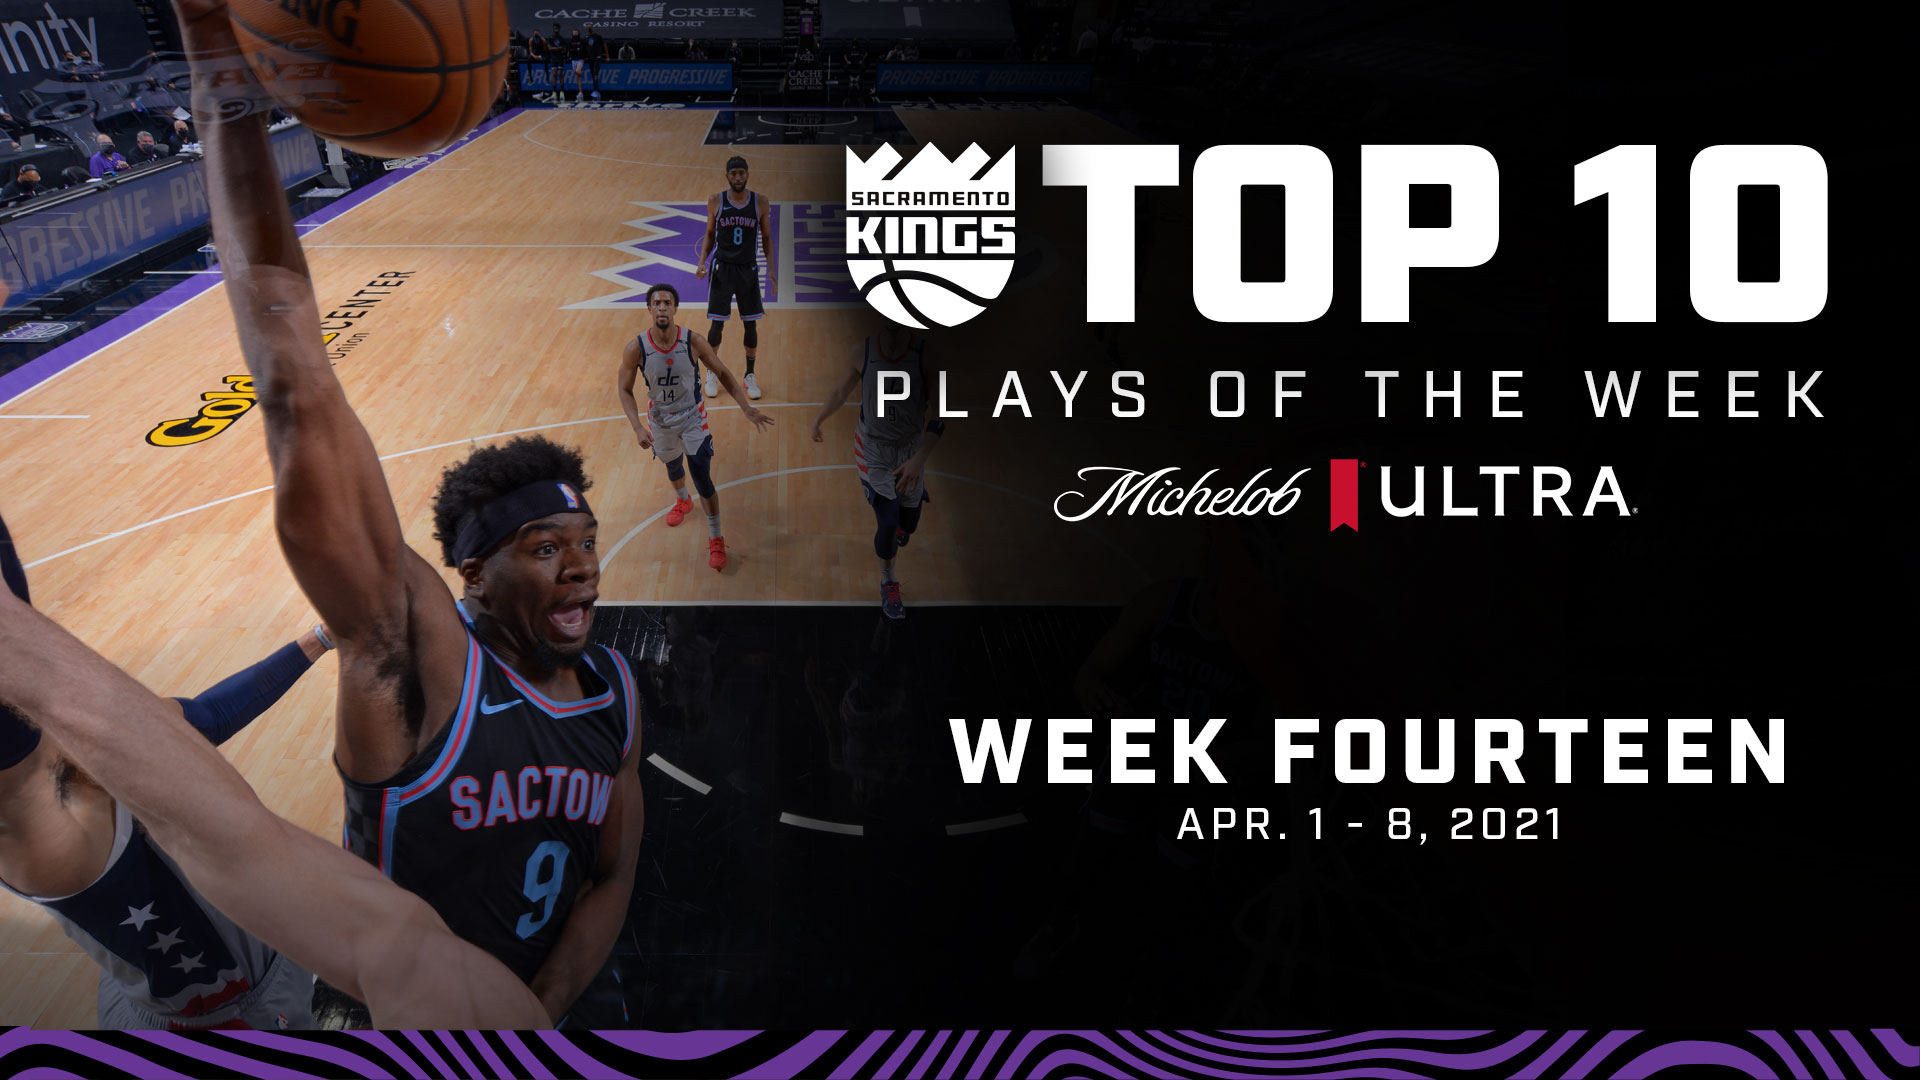 Kings Top 10 Plays of the Week | Week 15